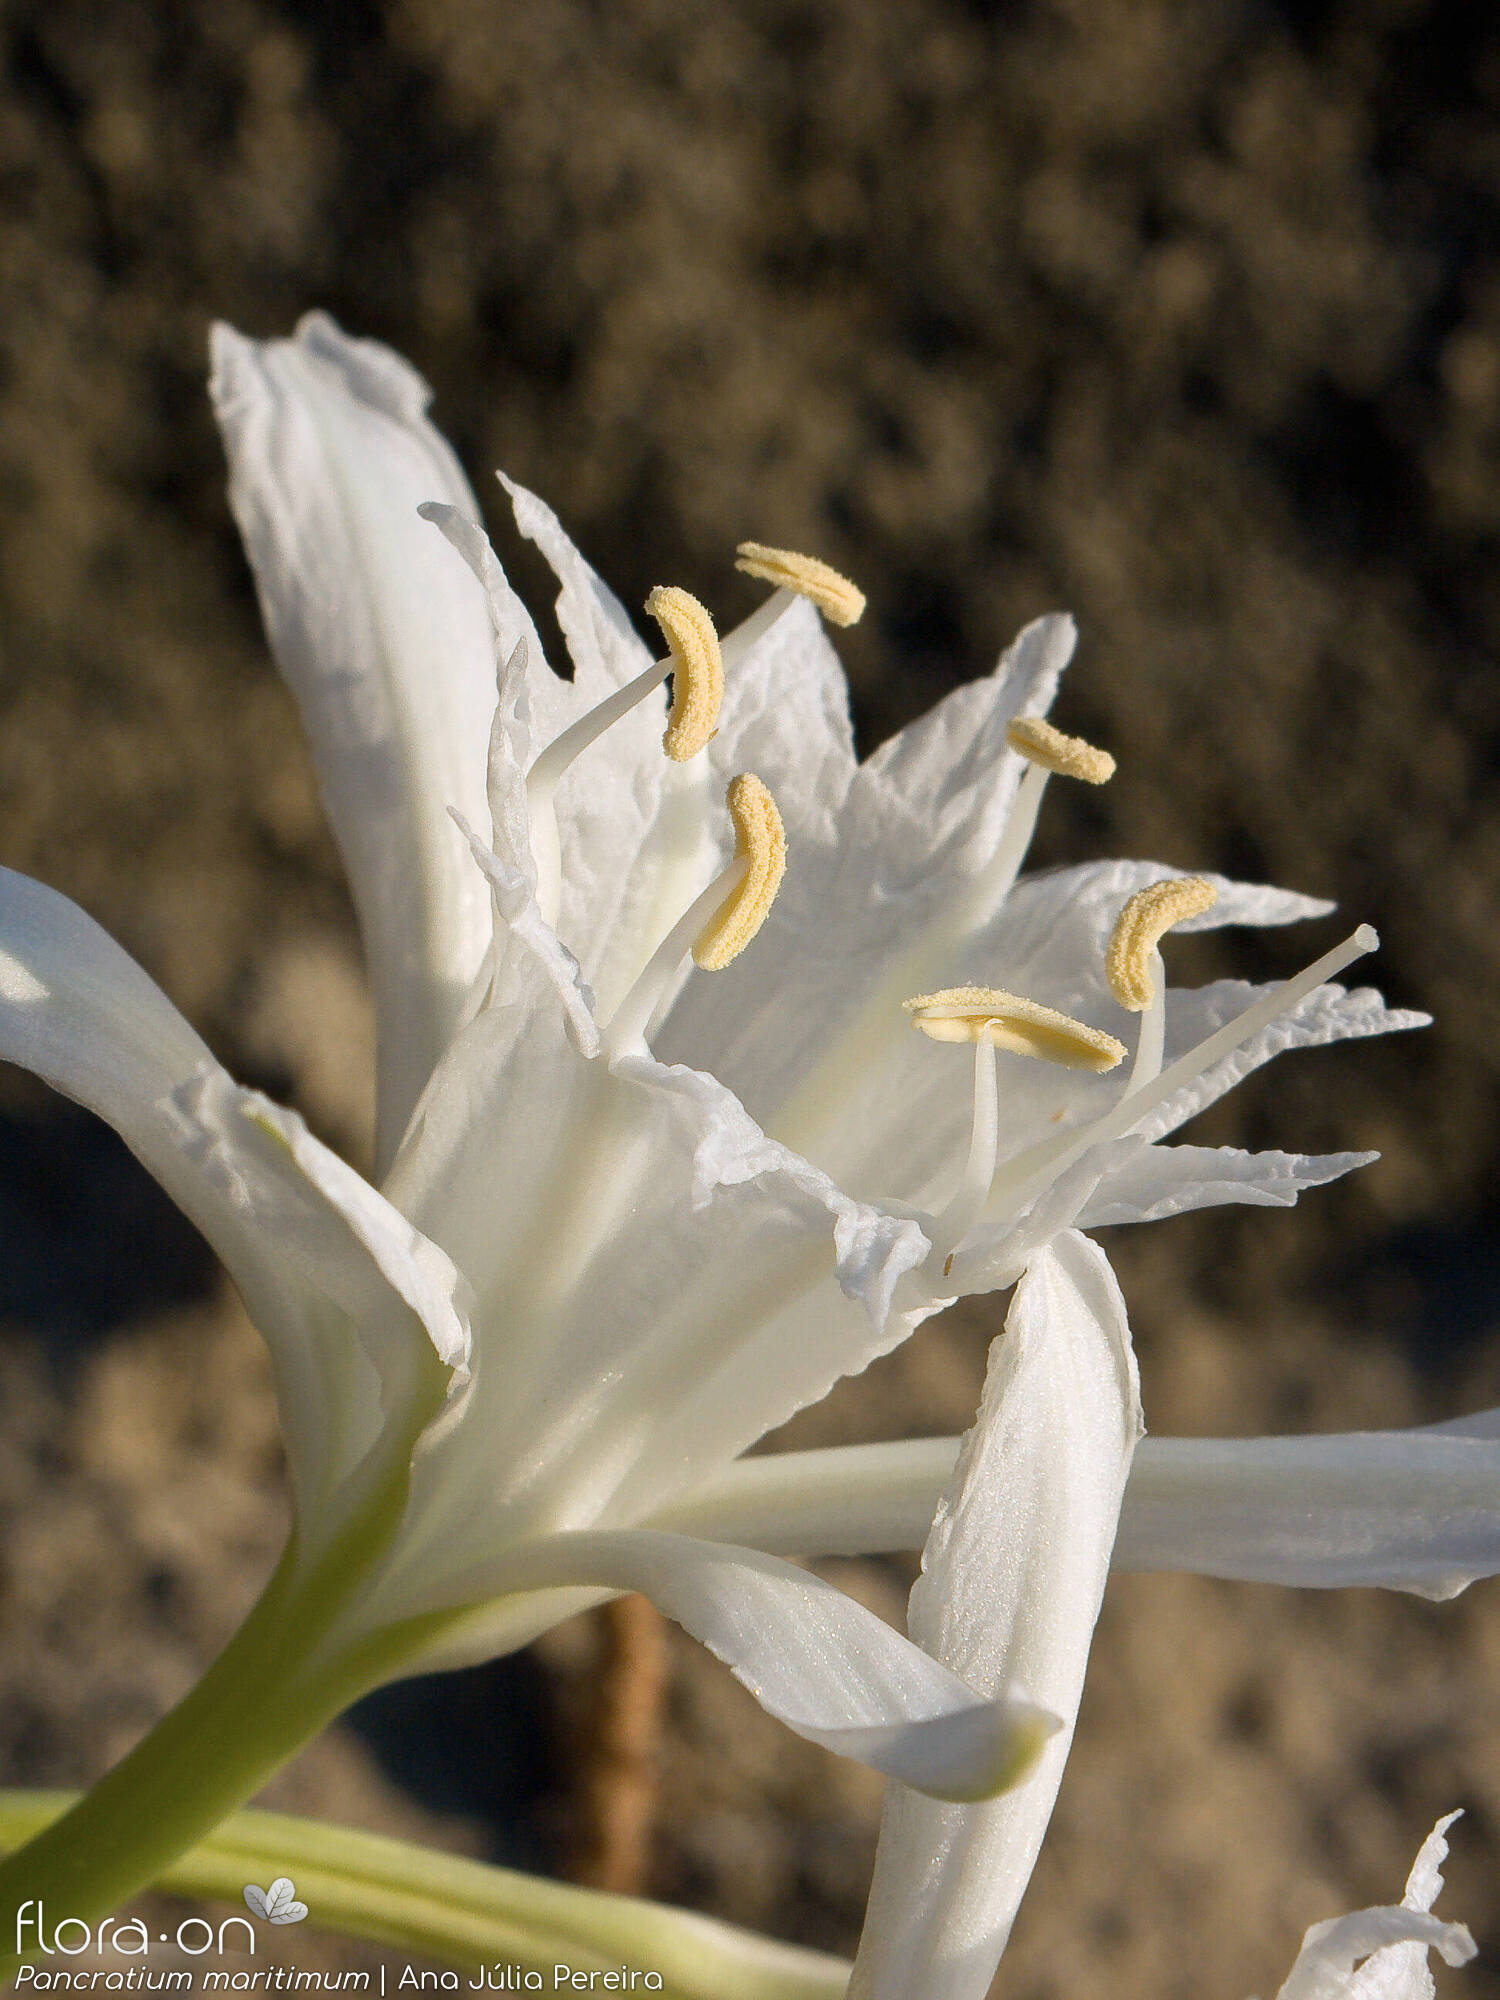 Pancratium maritimum - Flor (close-up) | Ana Júlia Pereira; CC BY-NC 4.0